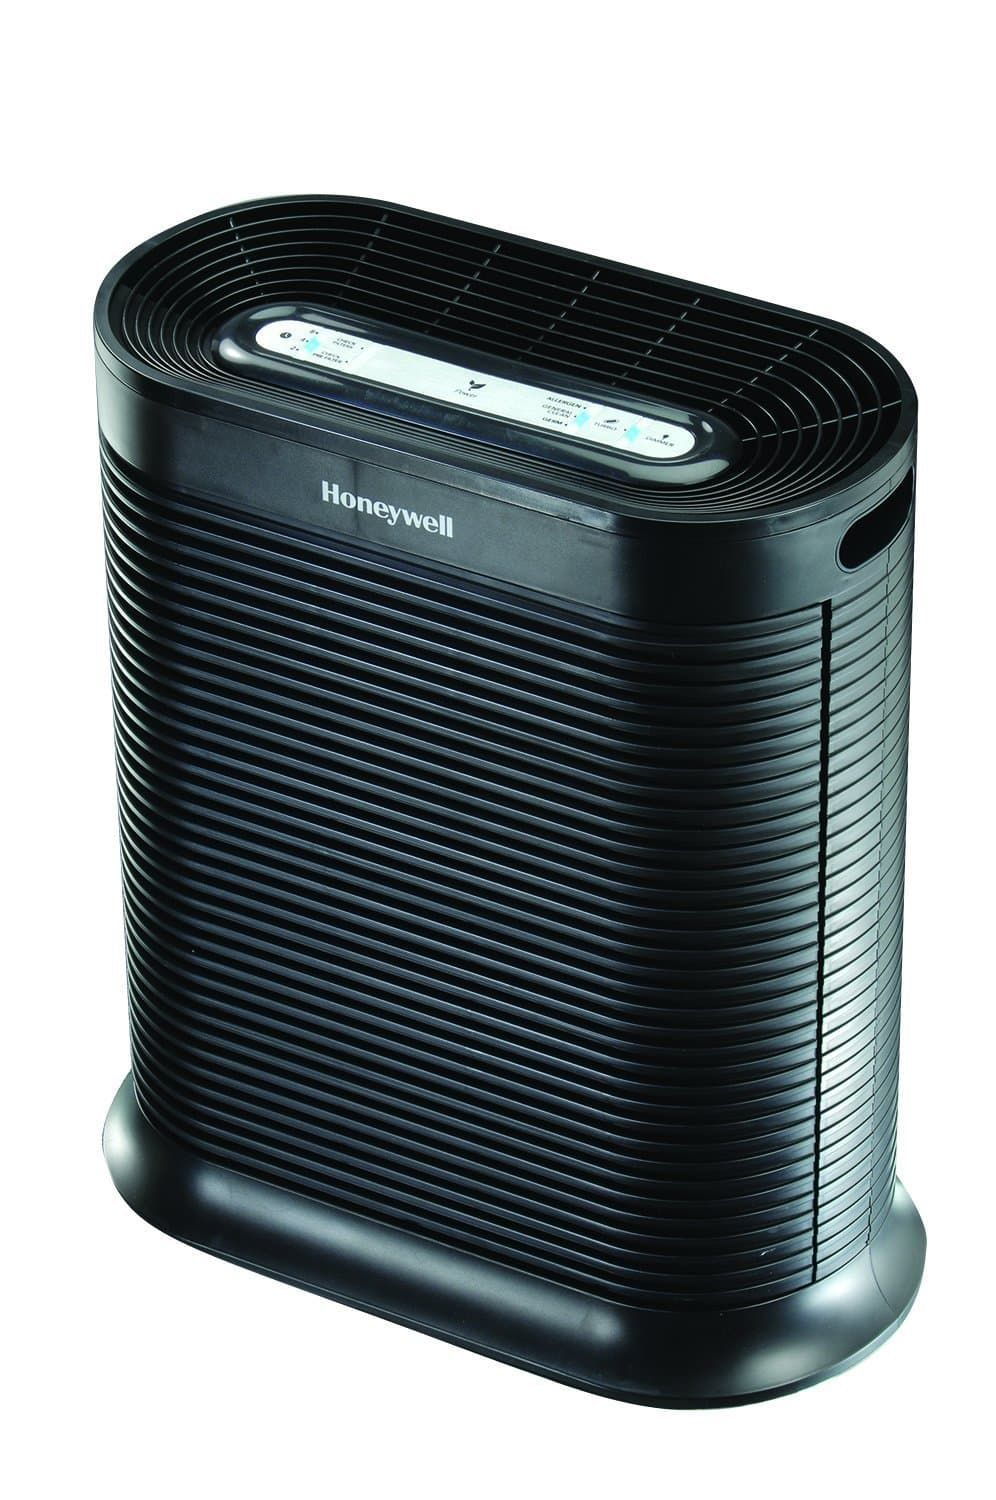 Top 10 Best Air Cleaners in 2020 Hepa air purifier, Air